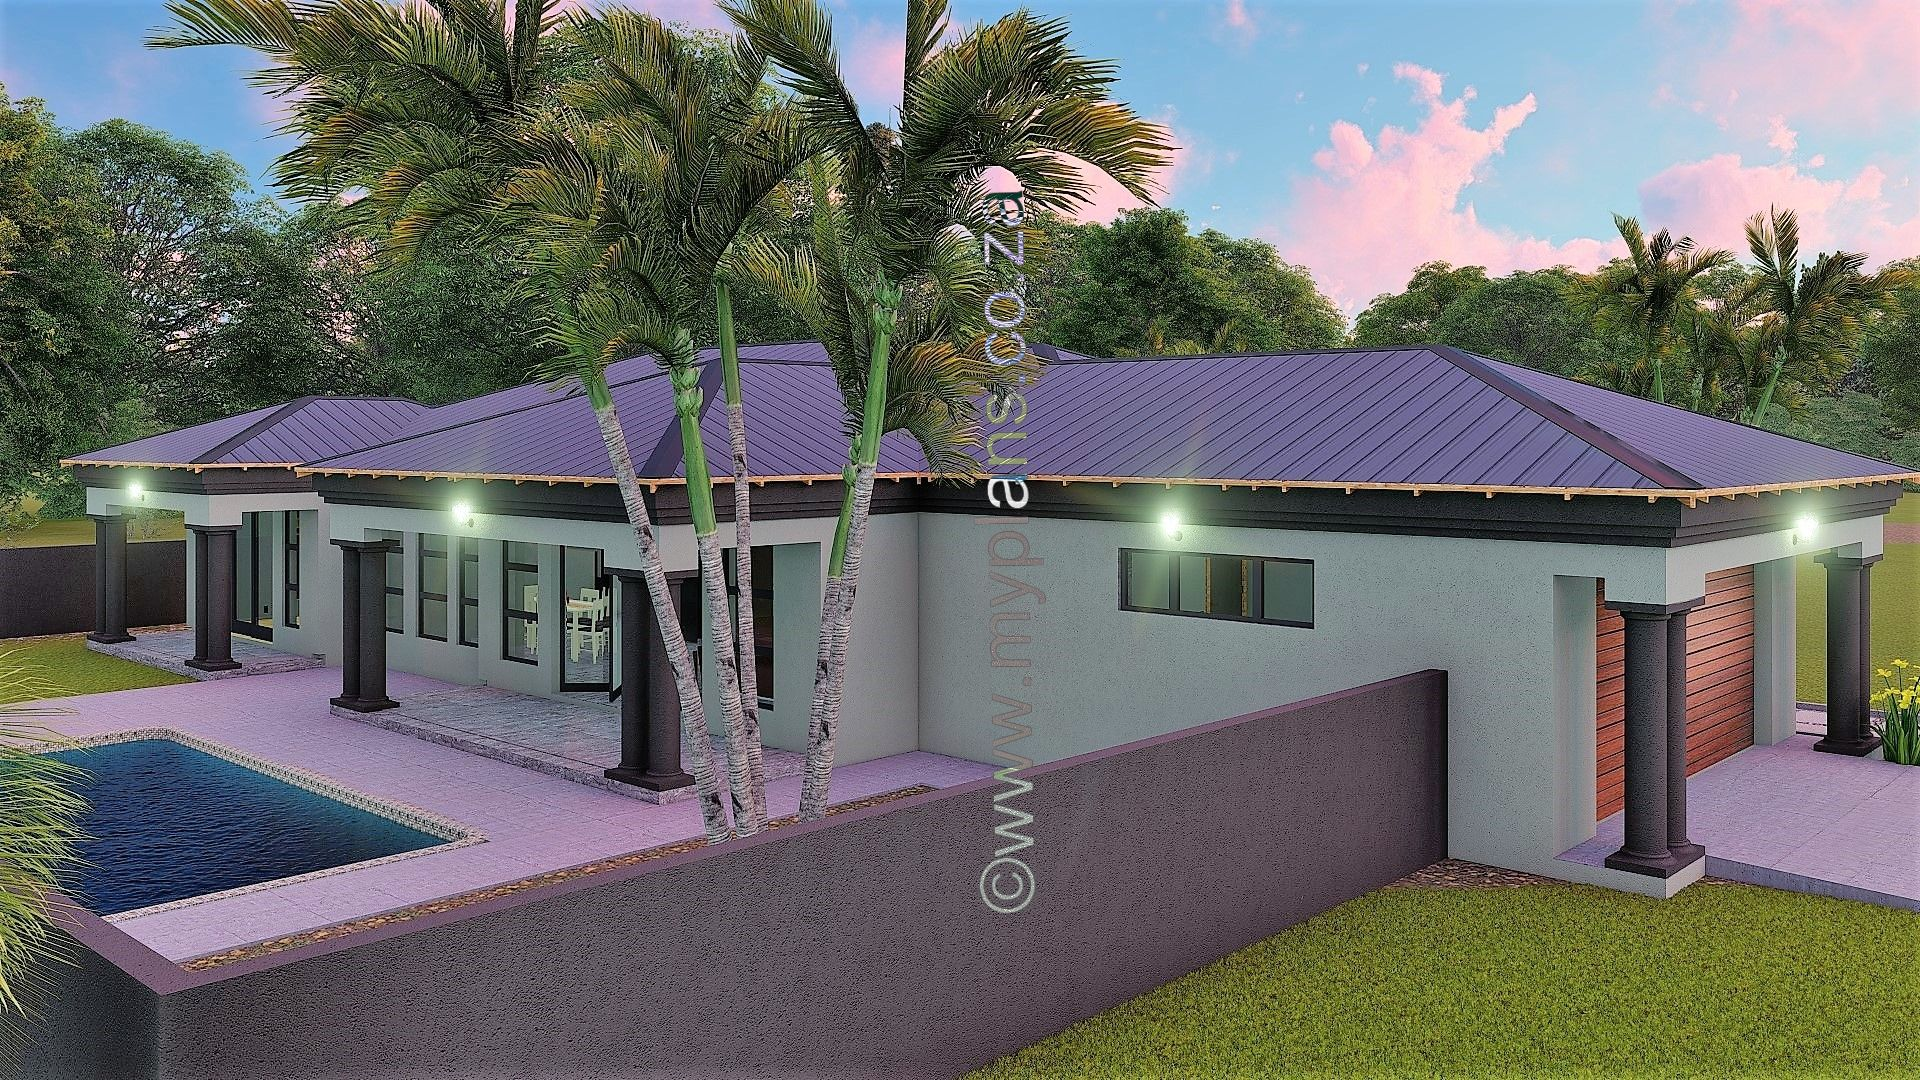 3 Bedroom House Plan Bla 074s Bedroom House Plans House Plans South Africa My House Plans